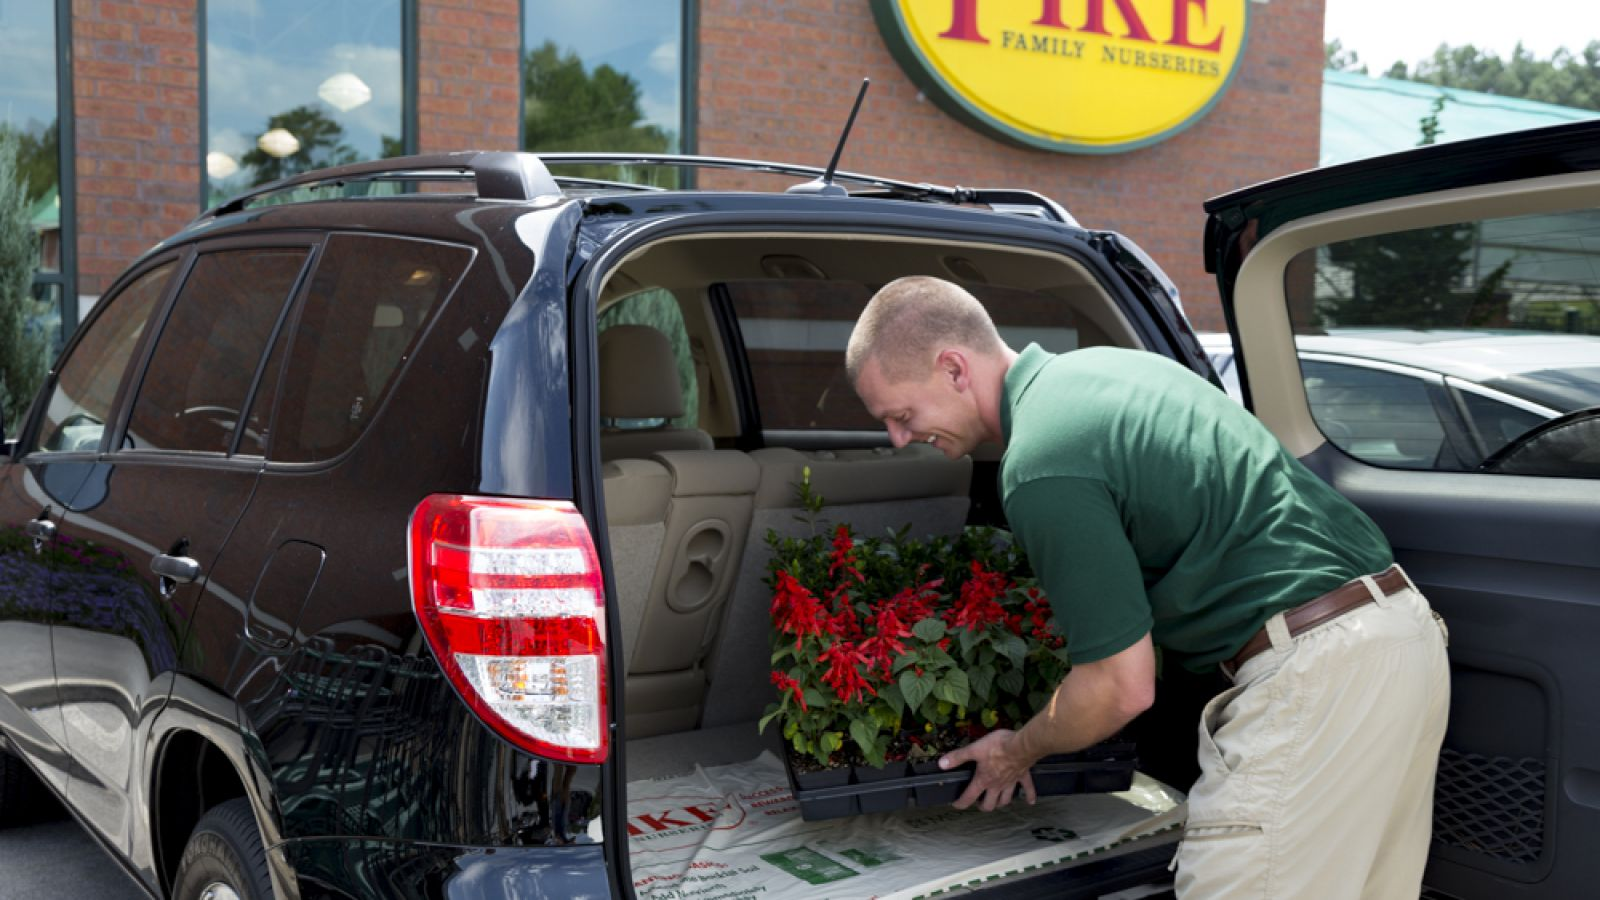 Pike employee loading plants into a vehicle